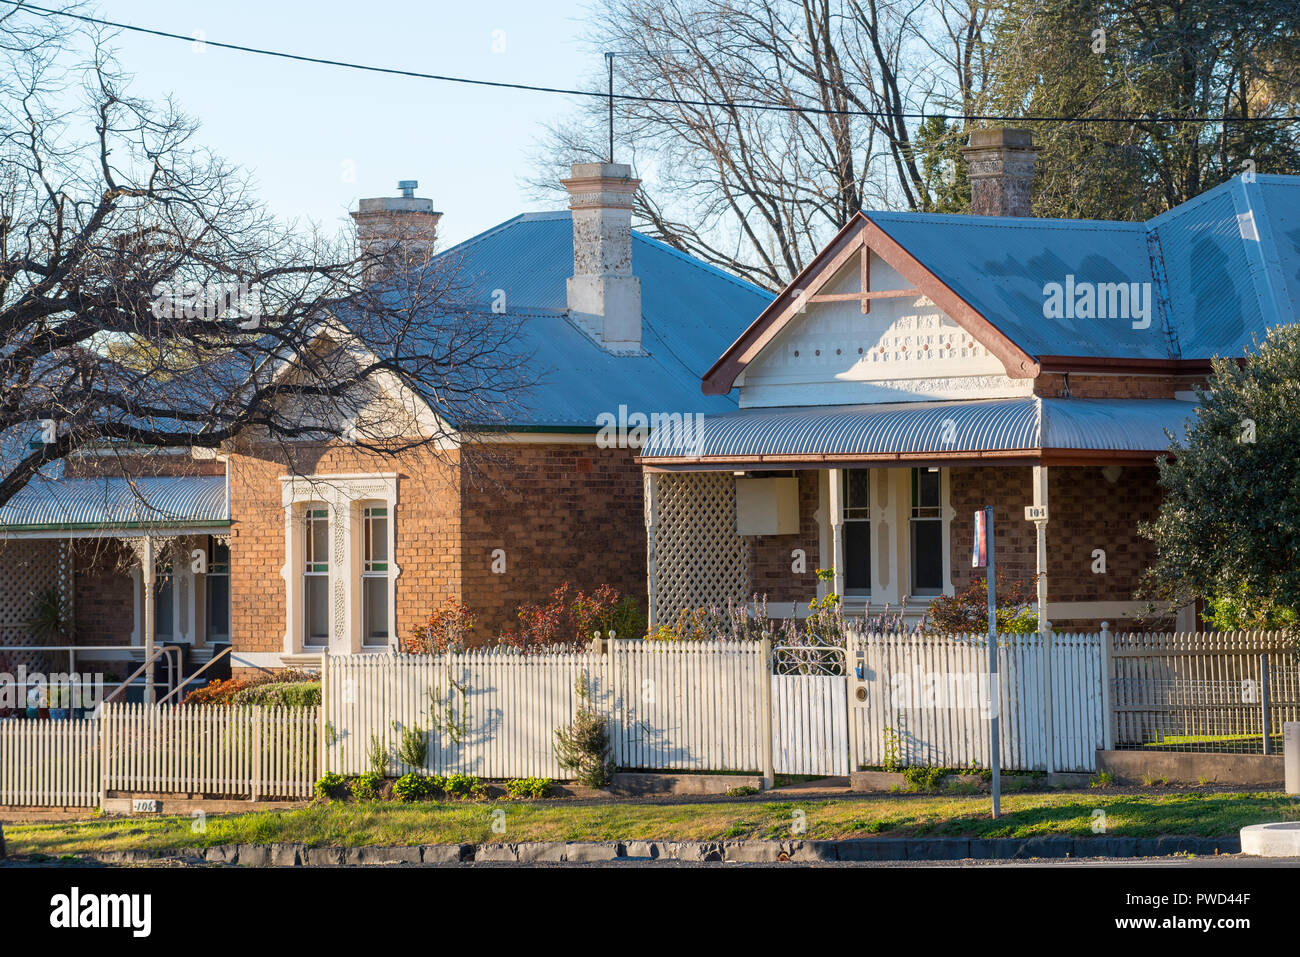 Two smaller workman Federation Bungalow design cottages with picket fences in Orange New South Wales, Australia - Stock Image